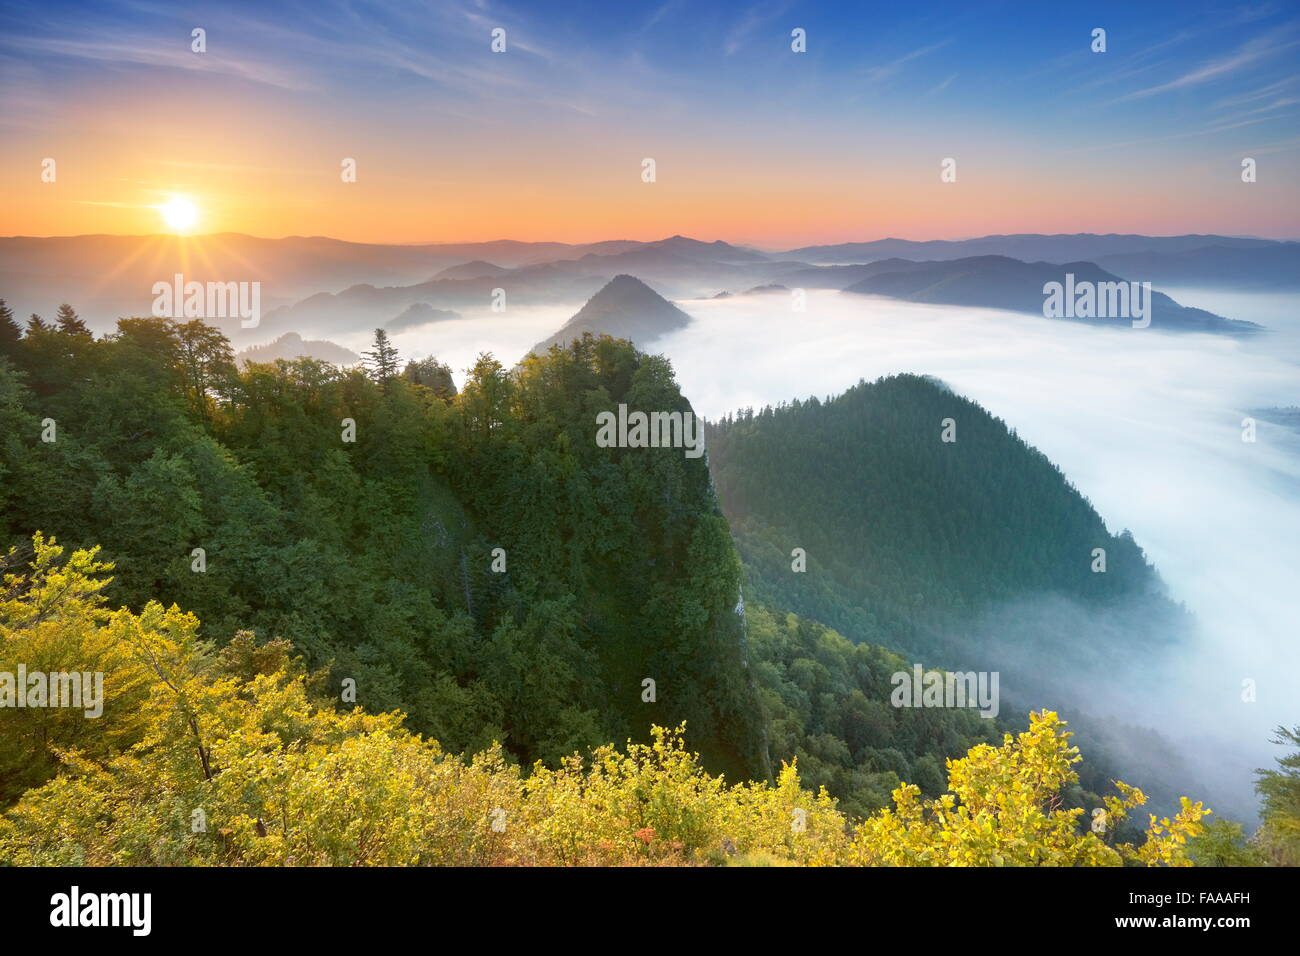 Pieniny Mountains, view from Trzy Korony Peak, Poland - Stock Image